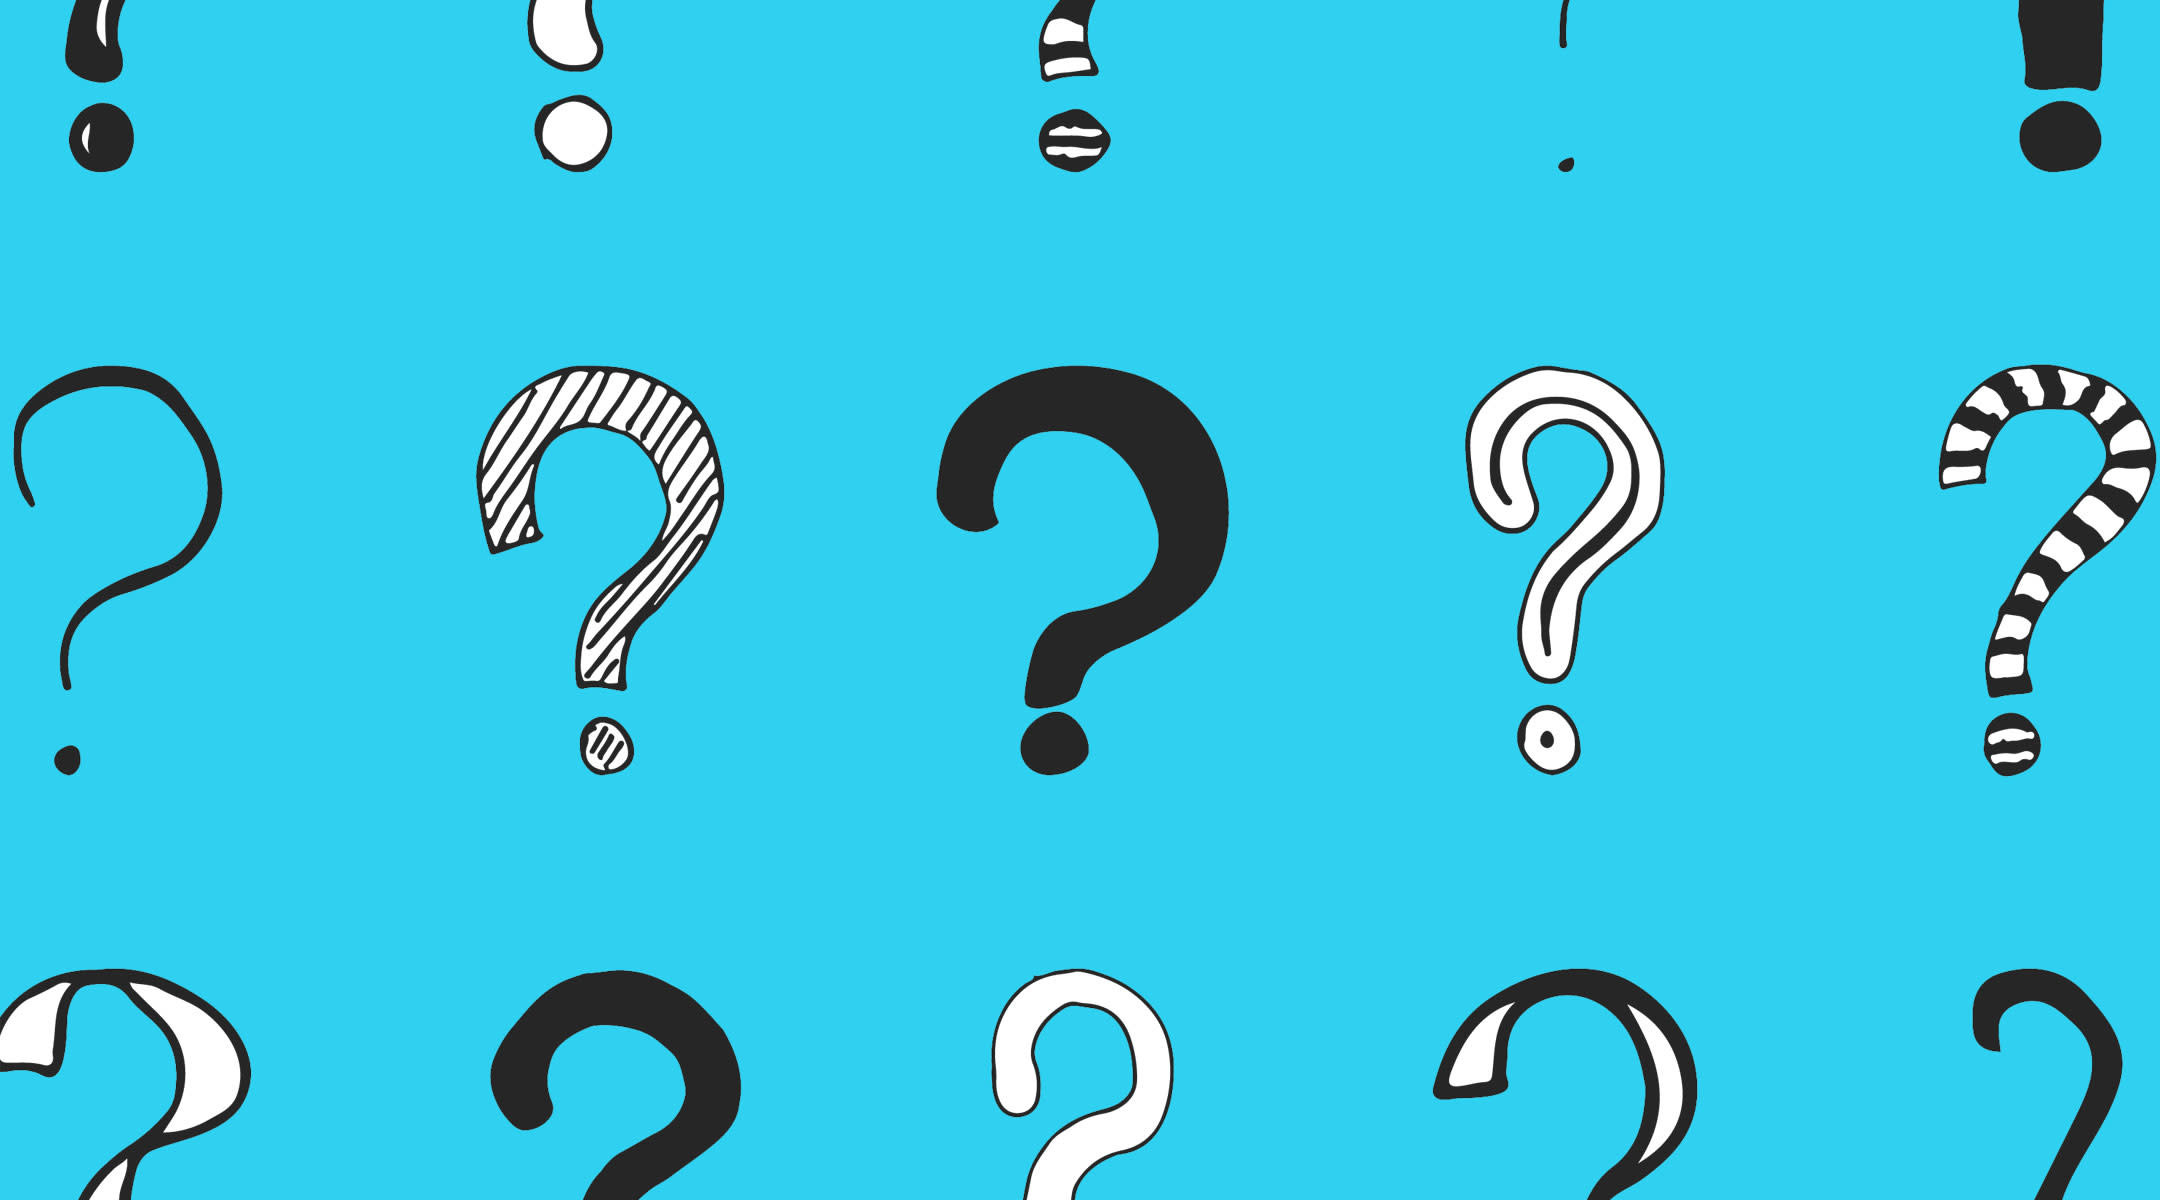 illustrated question marks